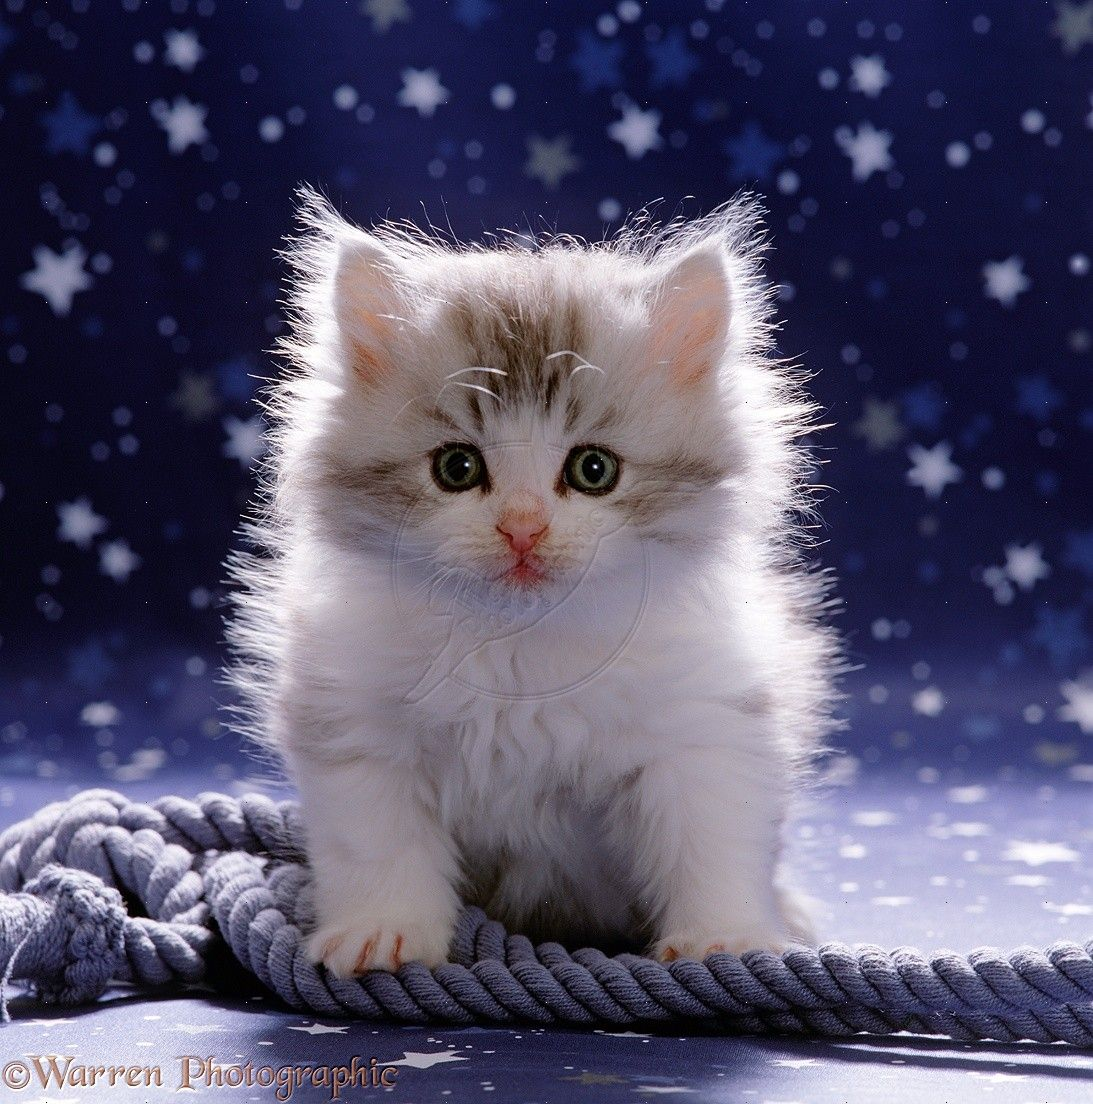 Fluffy Cute Kitten Wallpapers Kitten Pictures Kitten Wallpaper White Fluffy Kittens